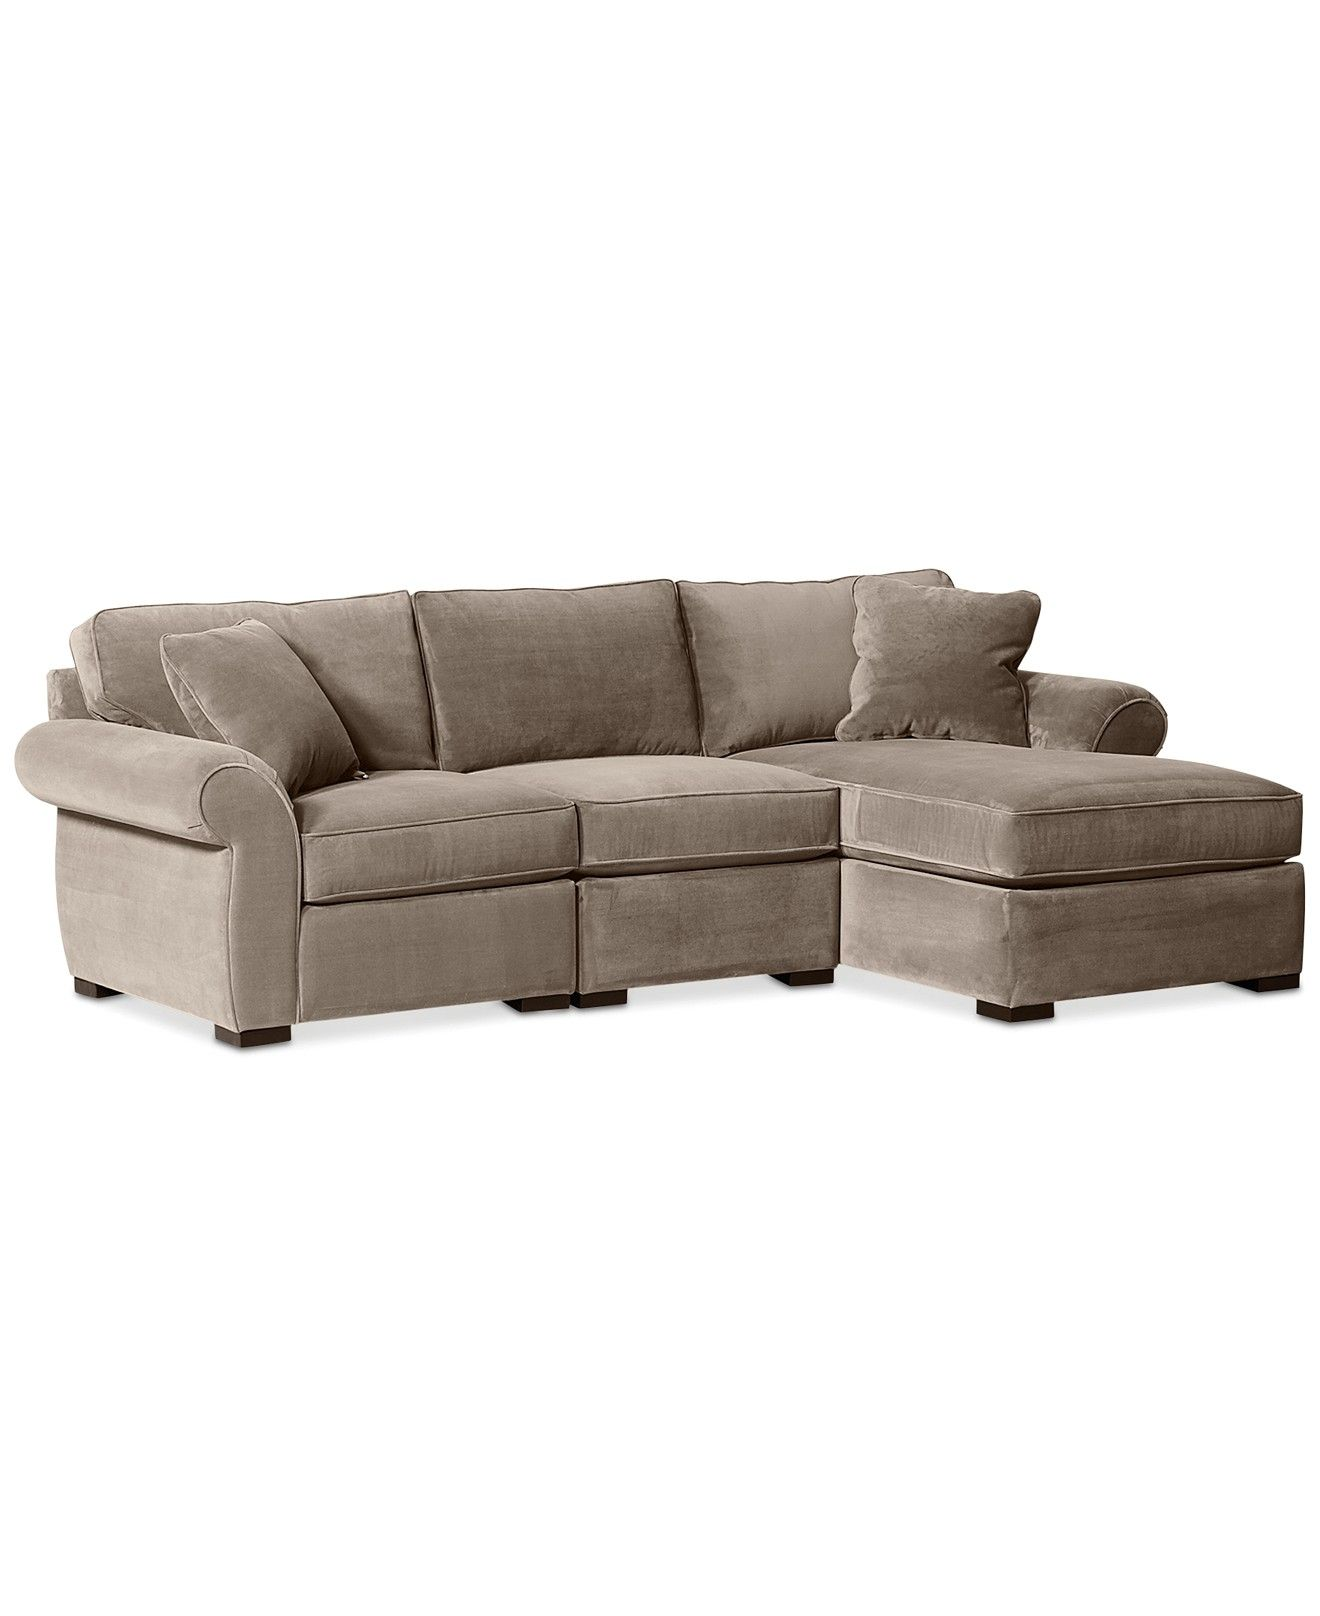 Trevor Fabric 3 Piece Chaise Sectional Sofa Sectional Sofas